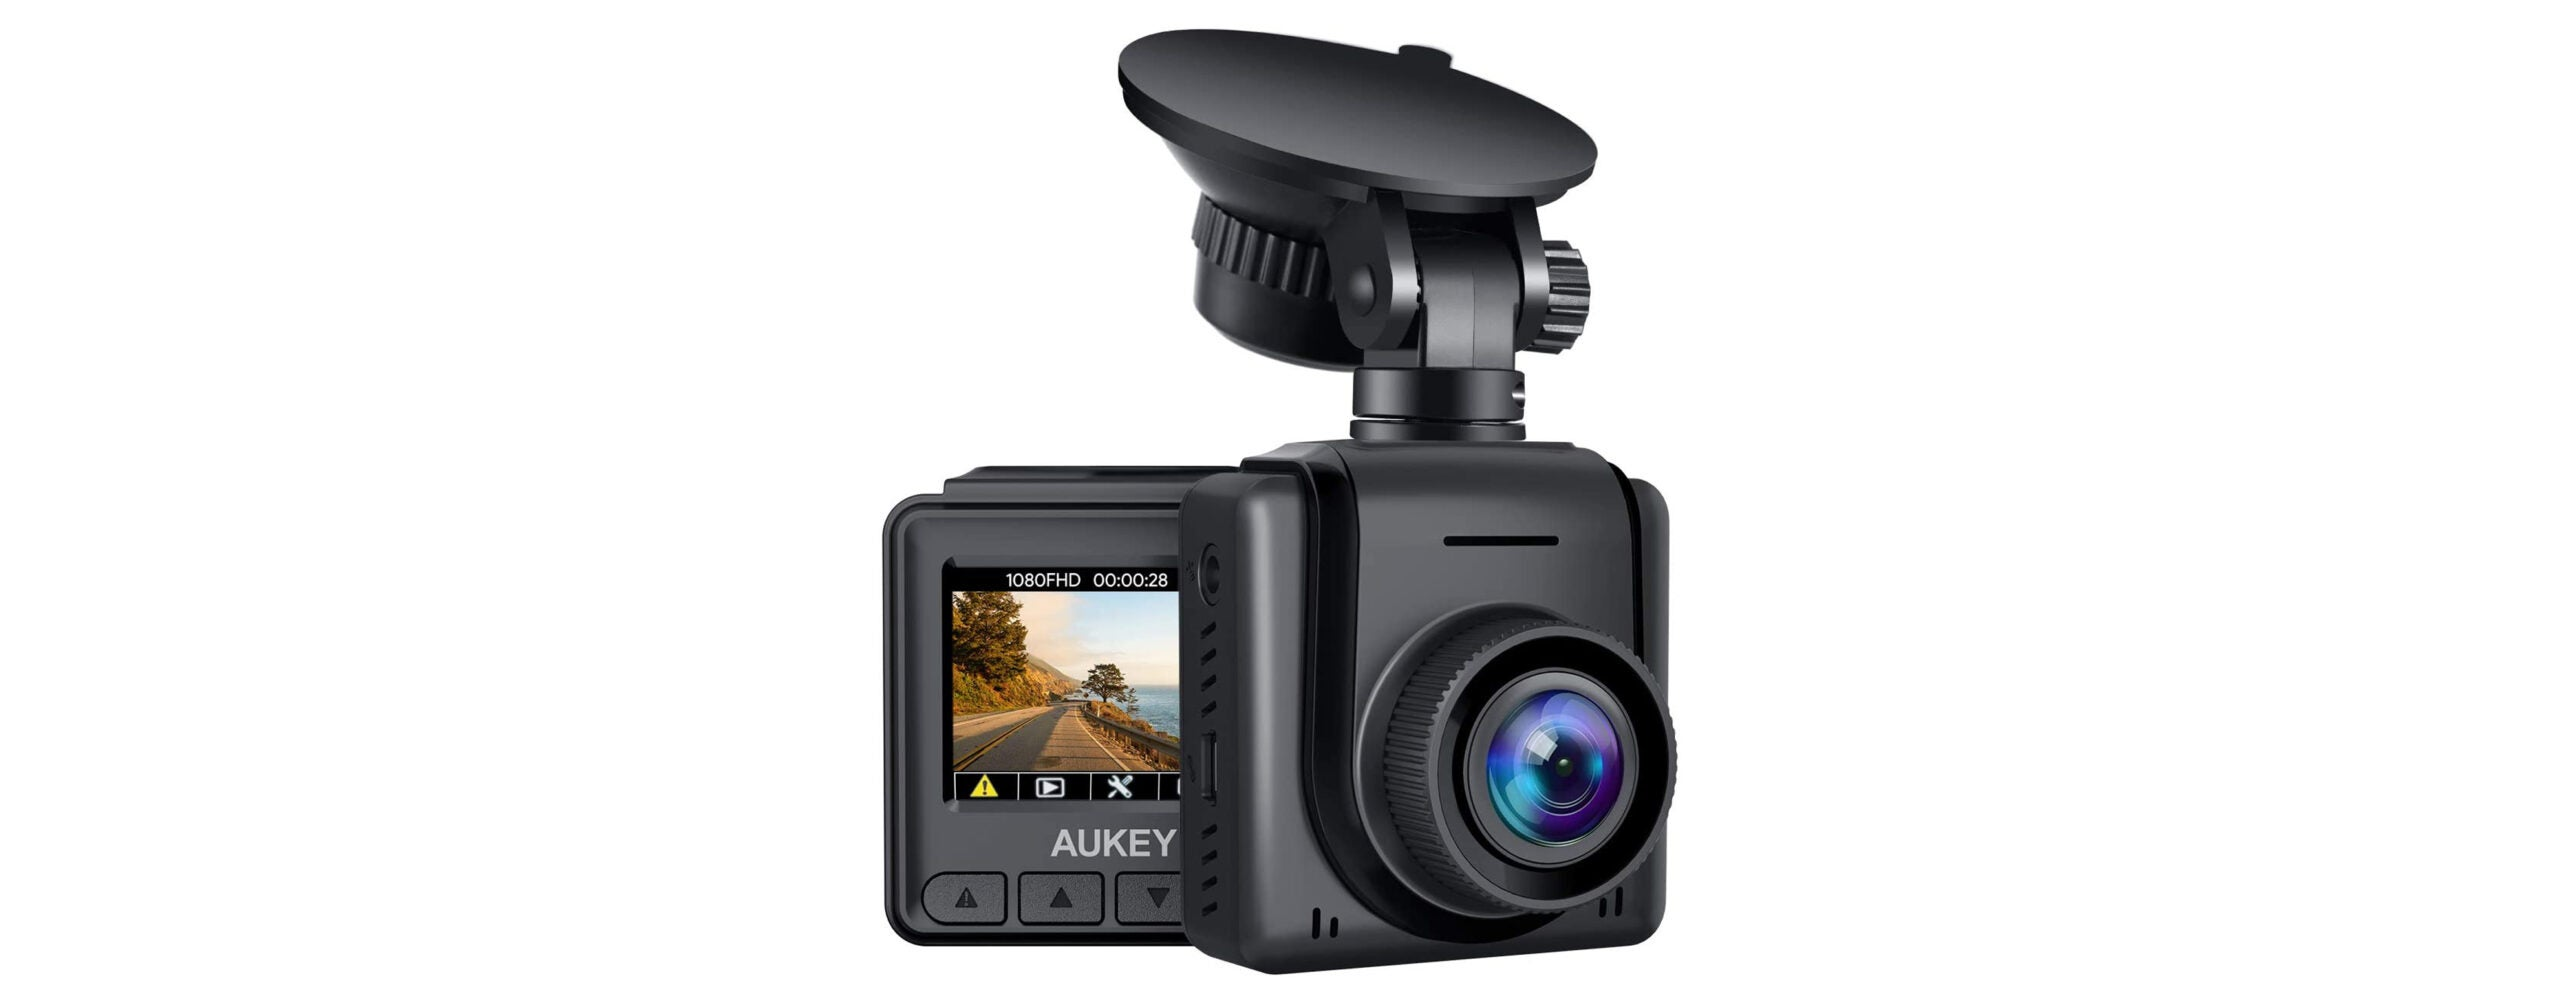 The Best Dash Cams Under $100 (Review & Buying Guide) in 2021